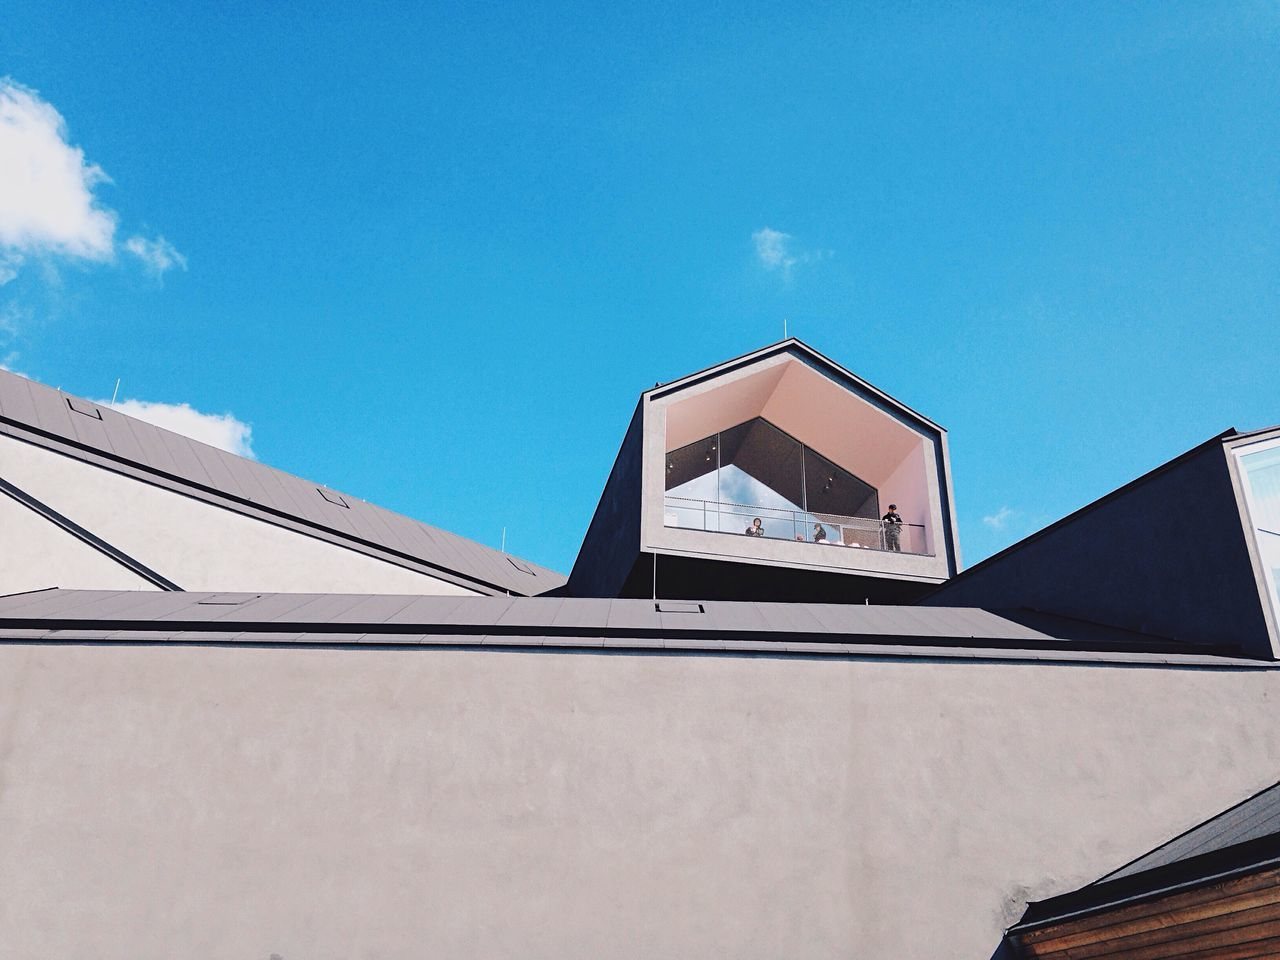 Beautiful stock photos of sonnenschein, sky, low angle view, blue, built structure